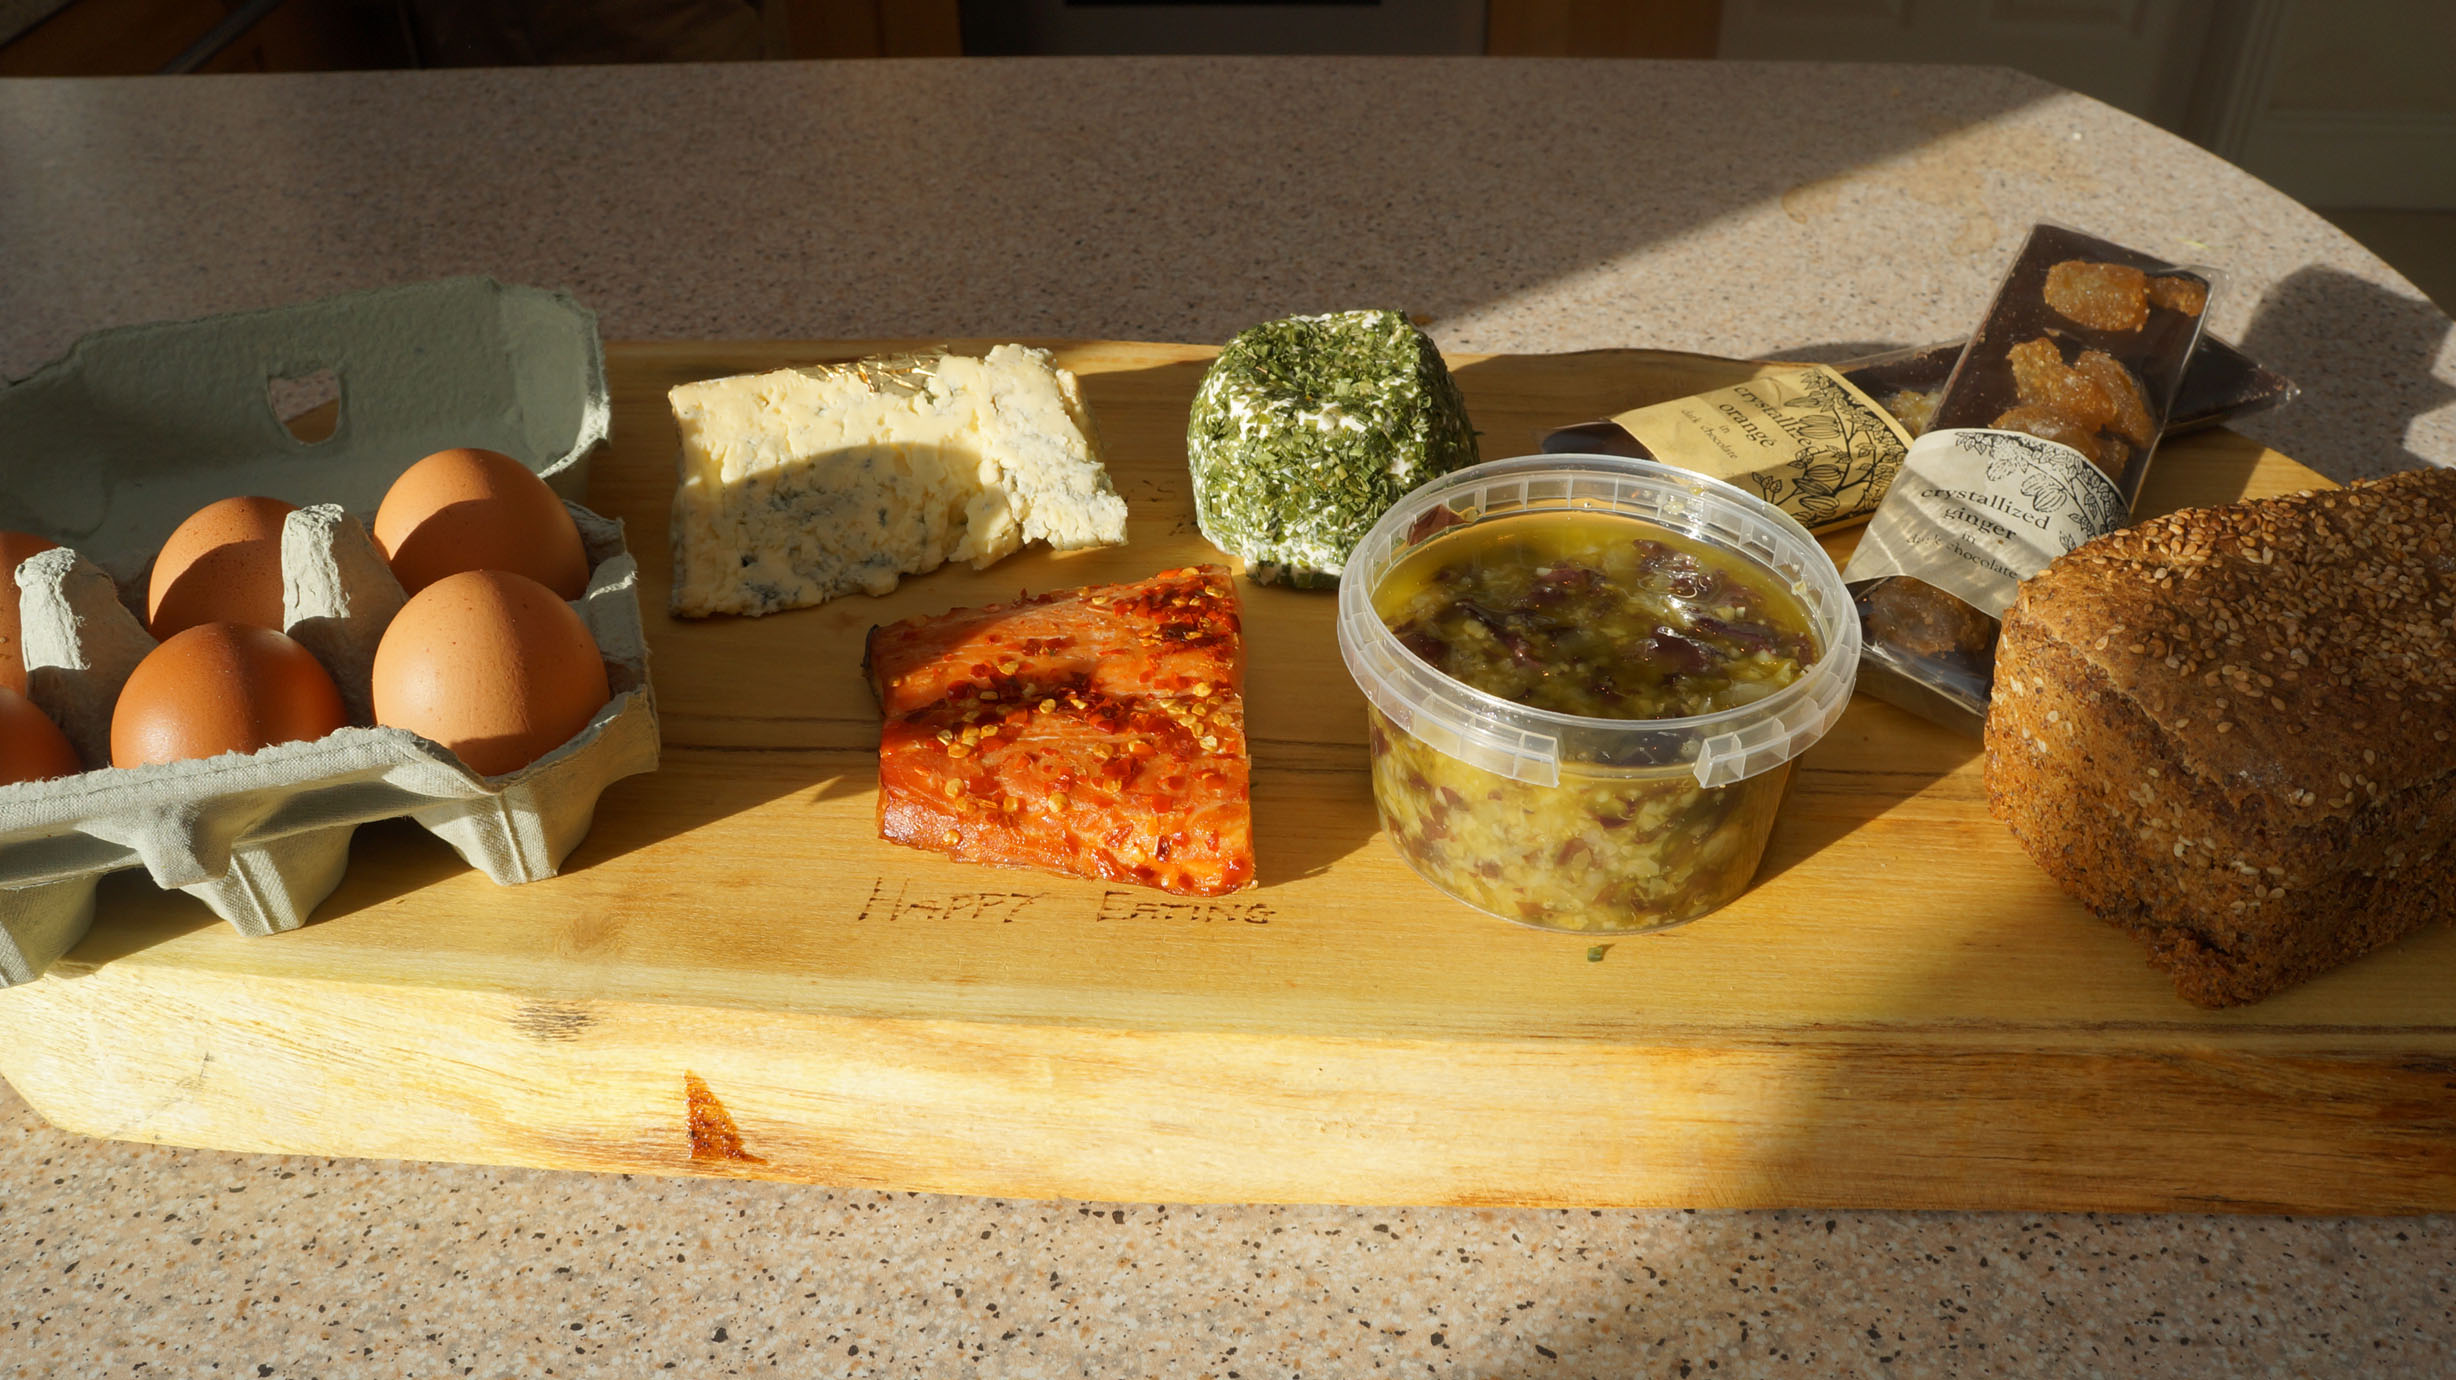 My goodies. Eggs, blue cheese, chive goat cheese, ginger dark chocolate, seaweed pickle, hot smoked salmon with chili.